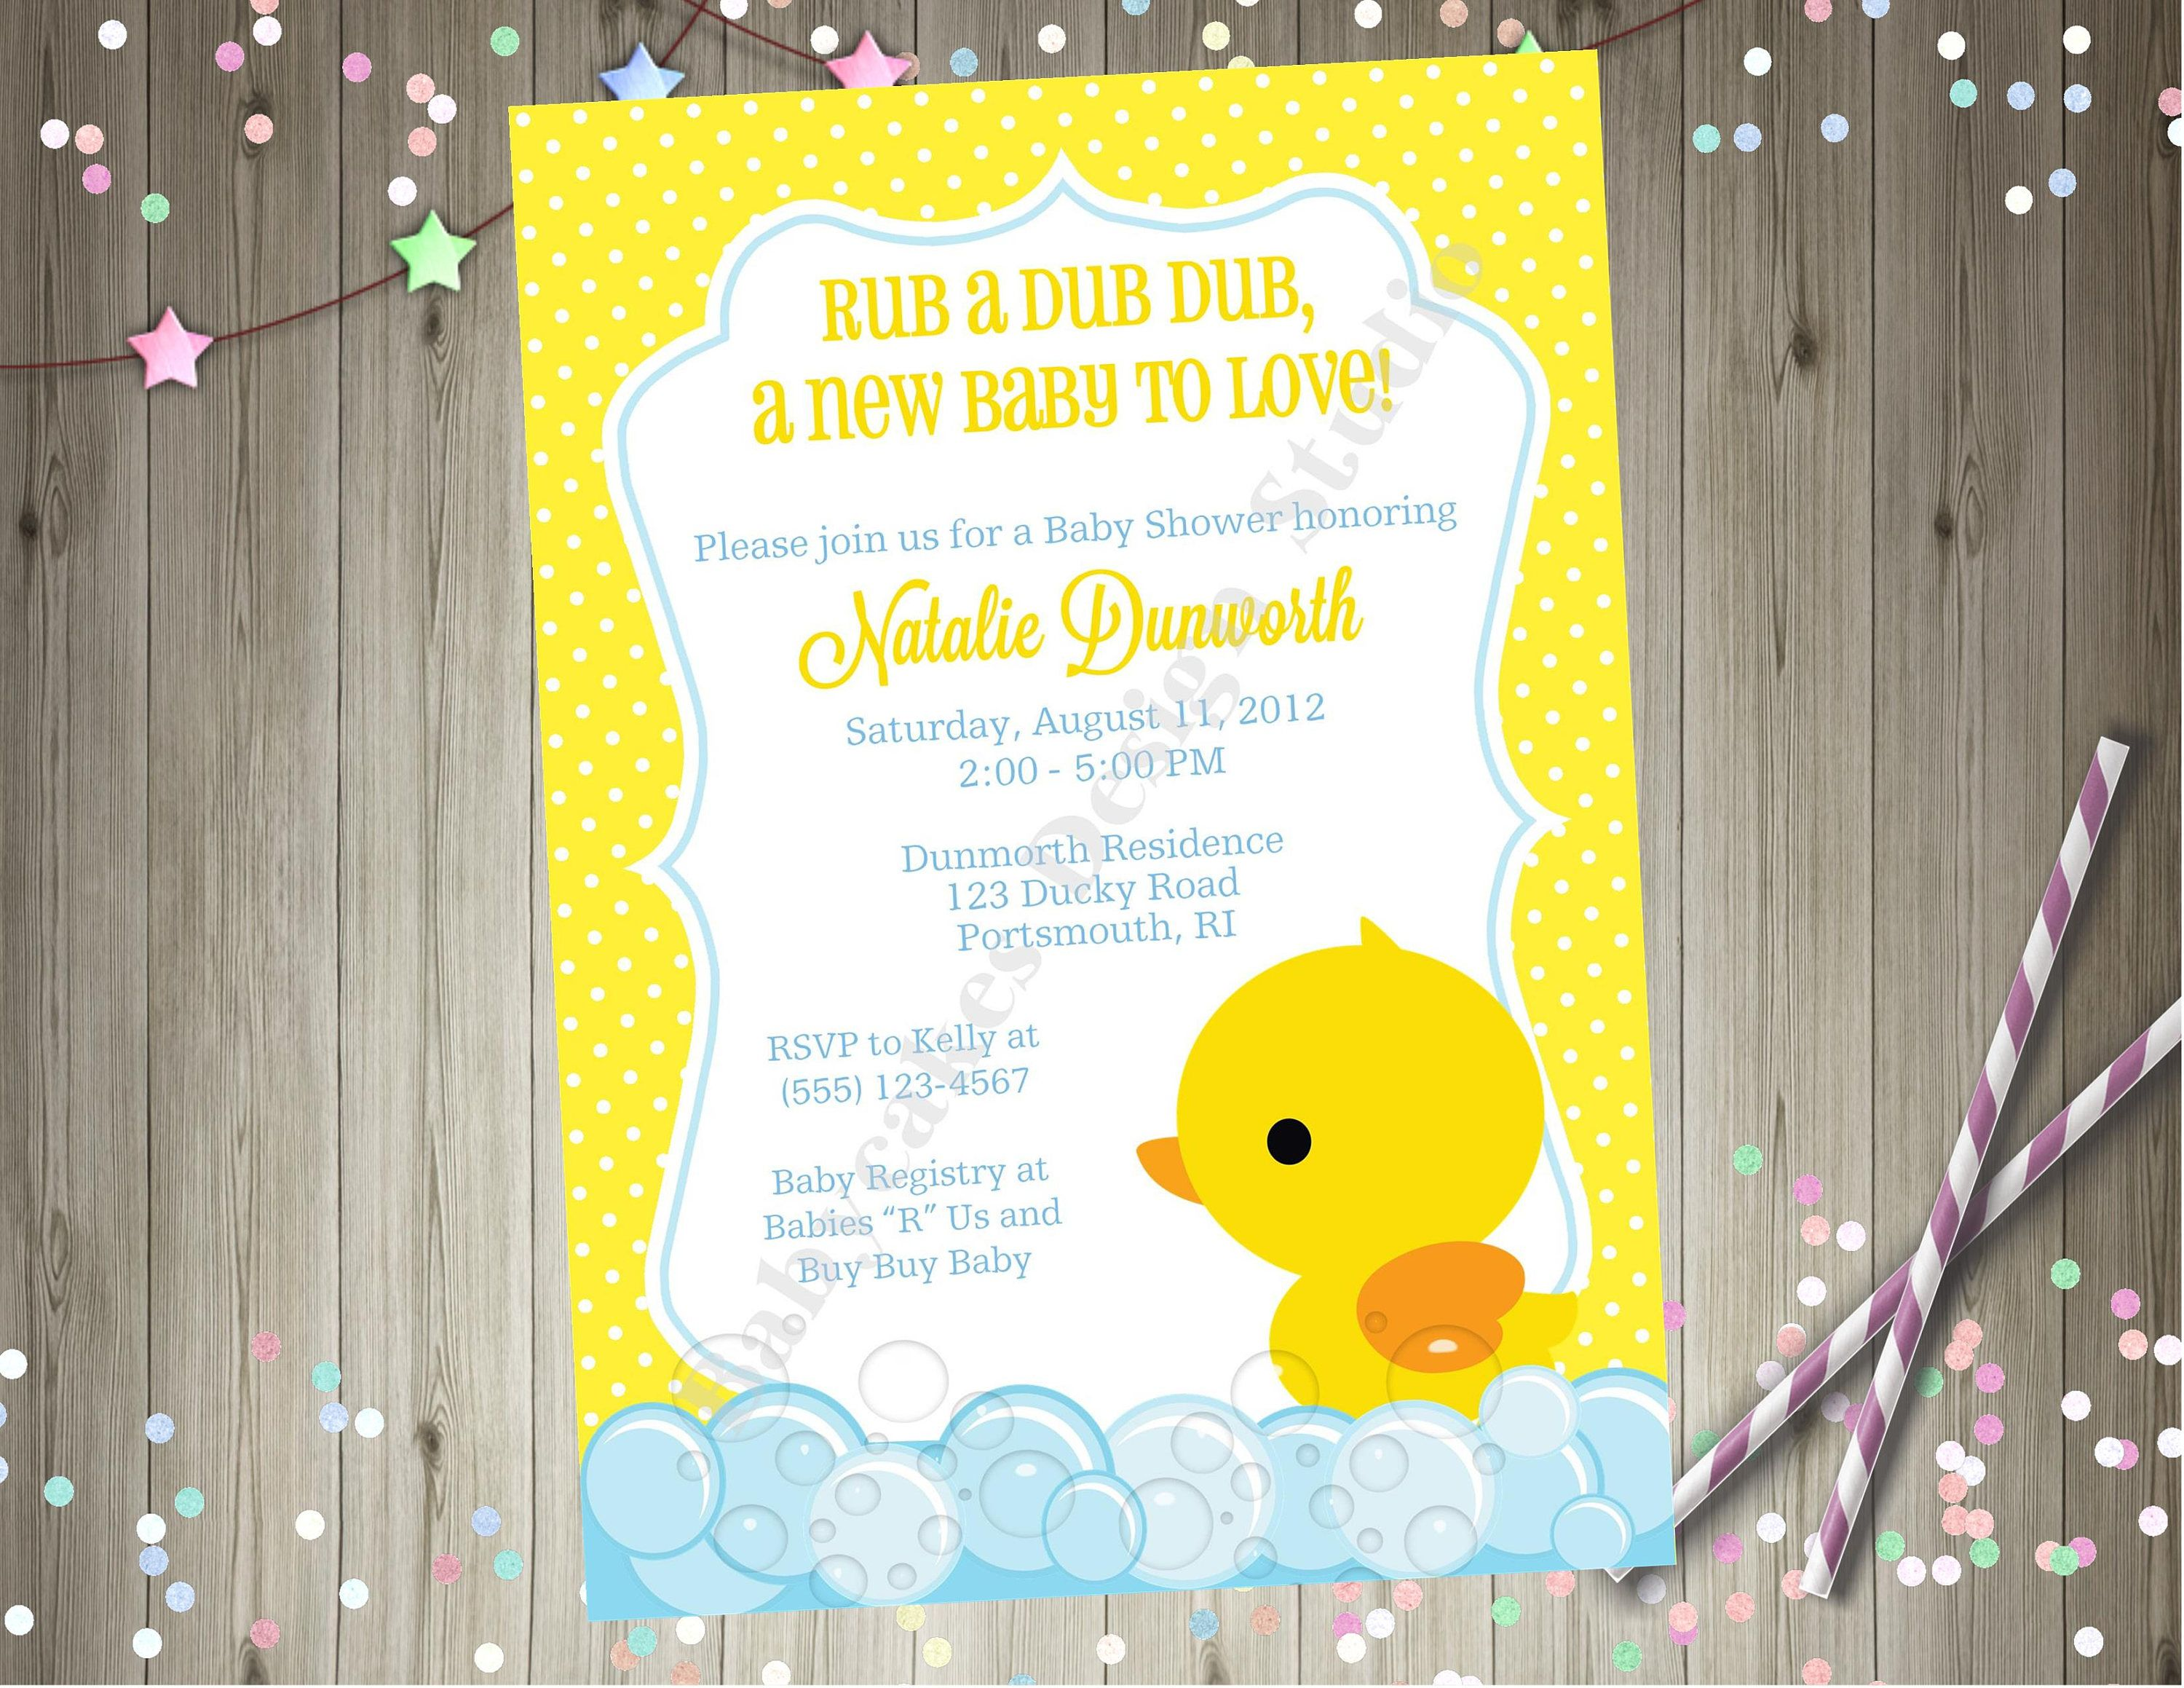 Rubber Ducky Baby Shower Invitation invite Gender Reveal Baby ...